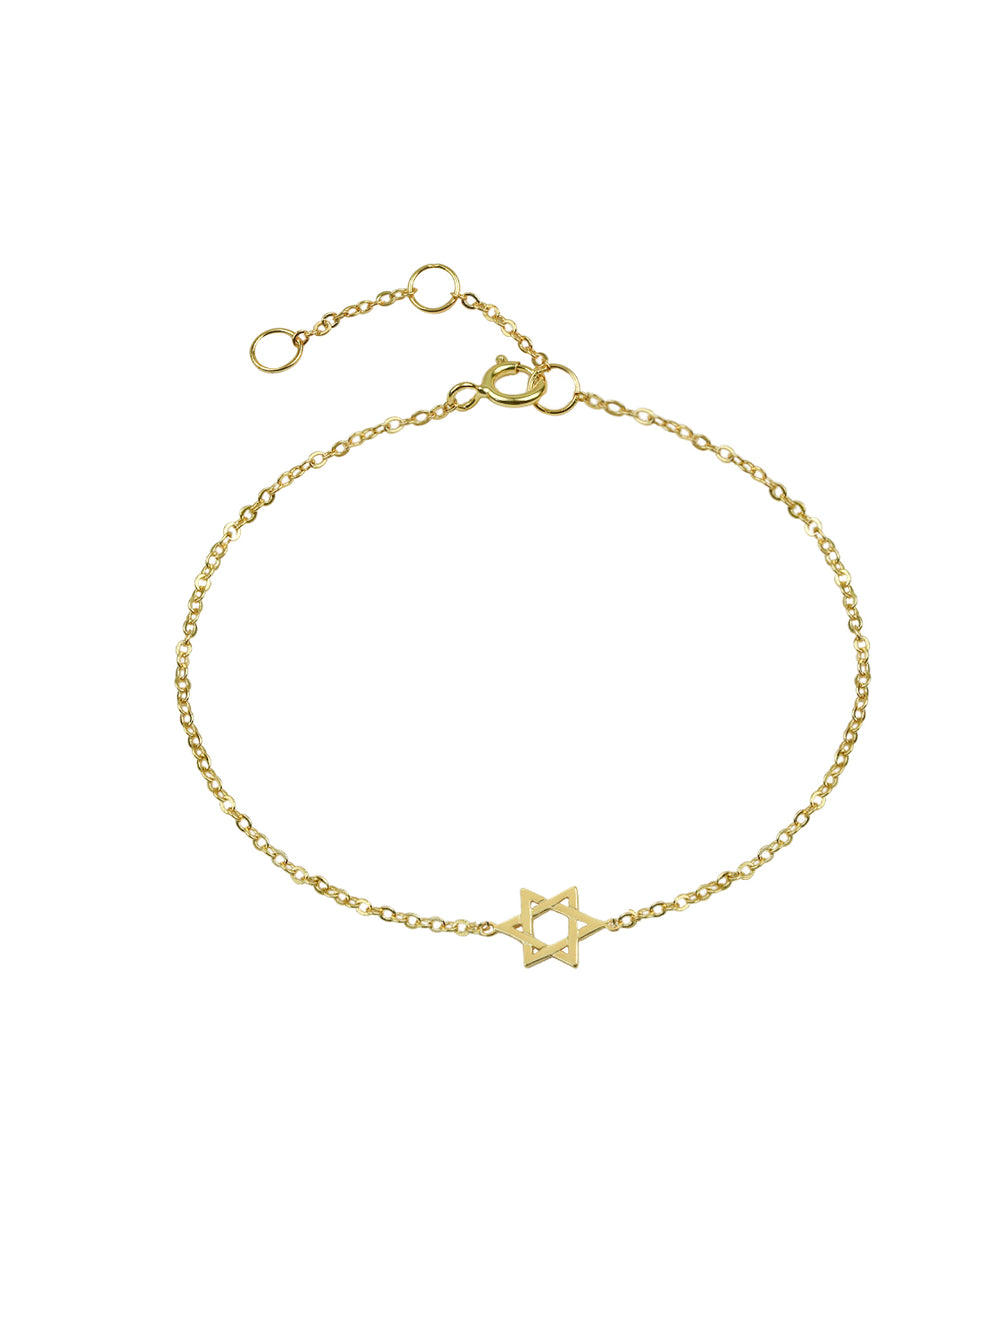 THE STAR OF DAVID LINK BRACELET (CHAPTER II BY GREG YÜNA X THE M JEWELERS)